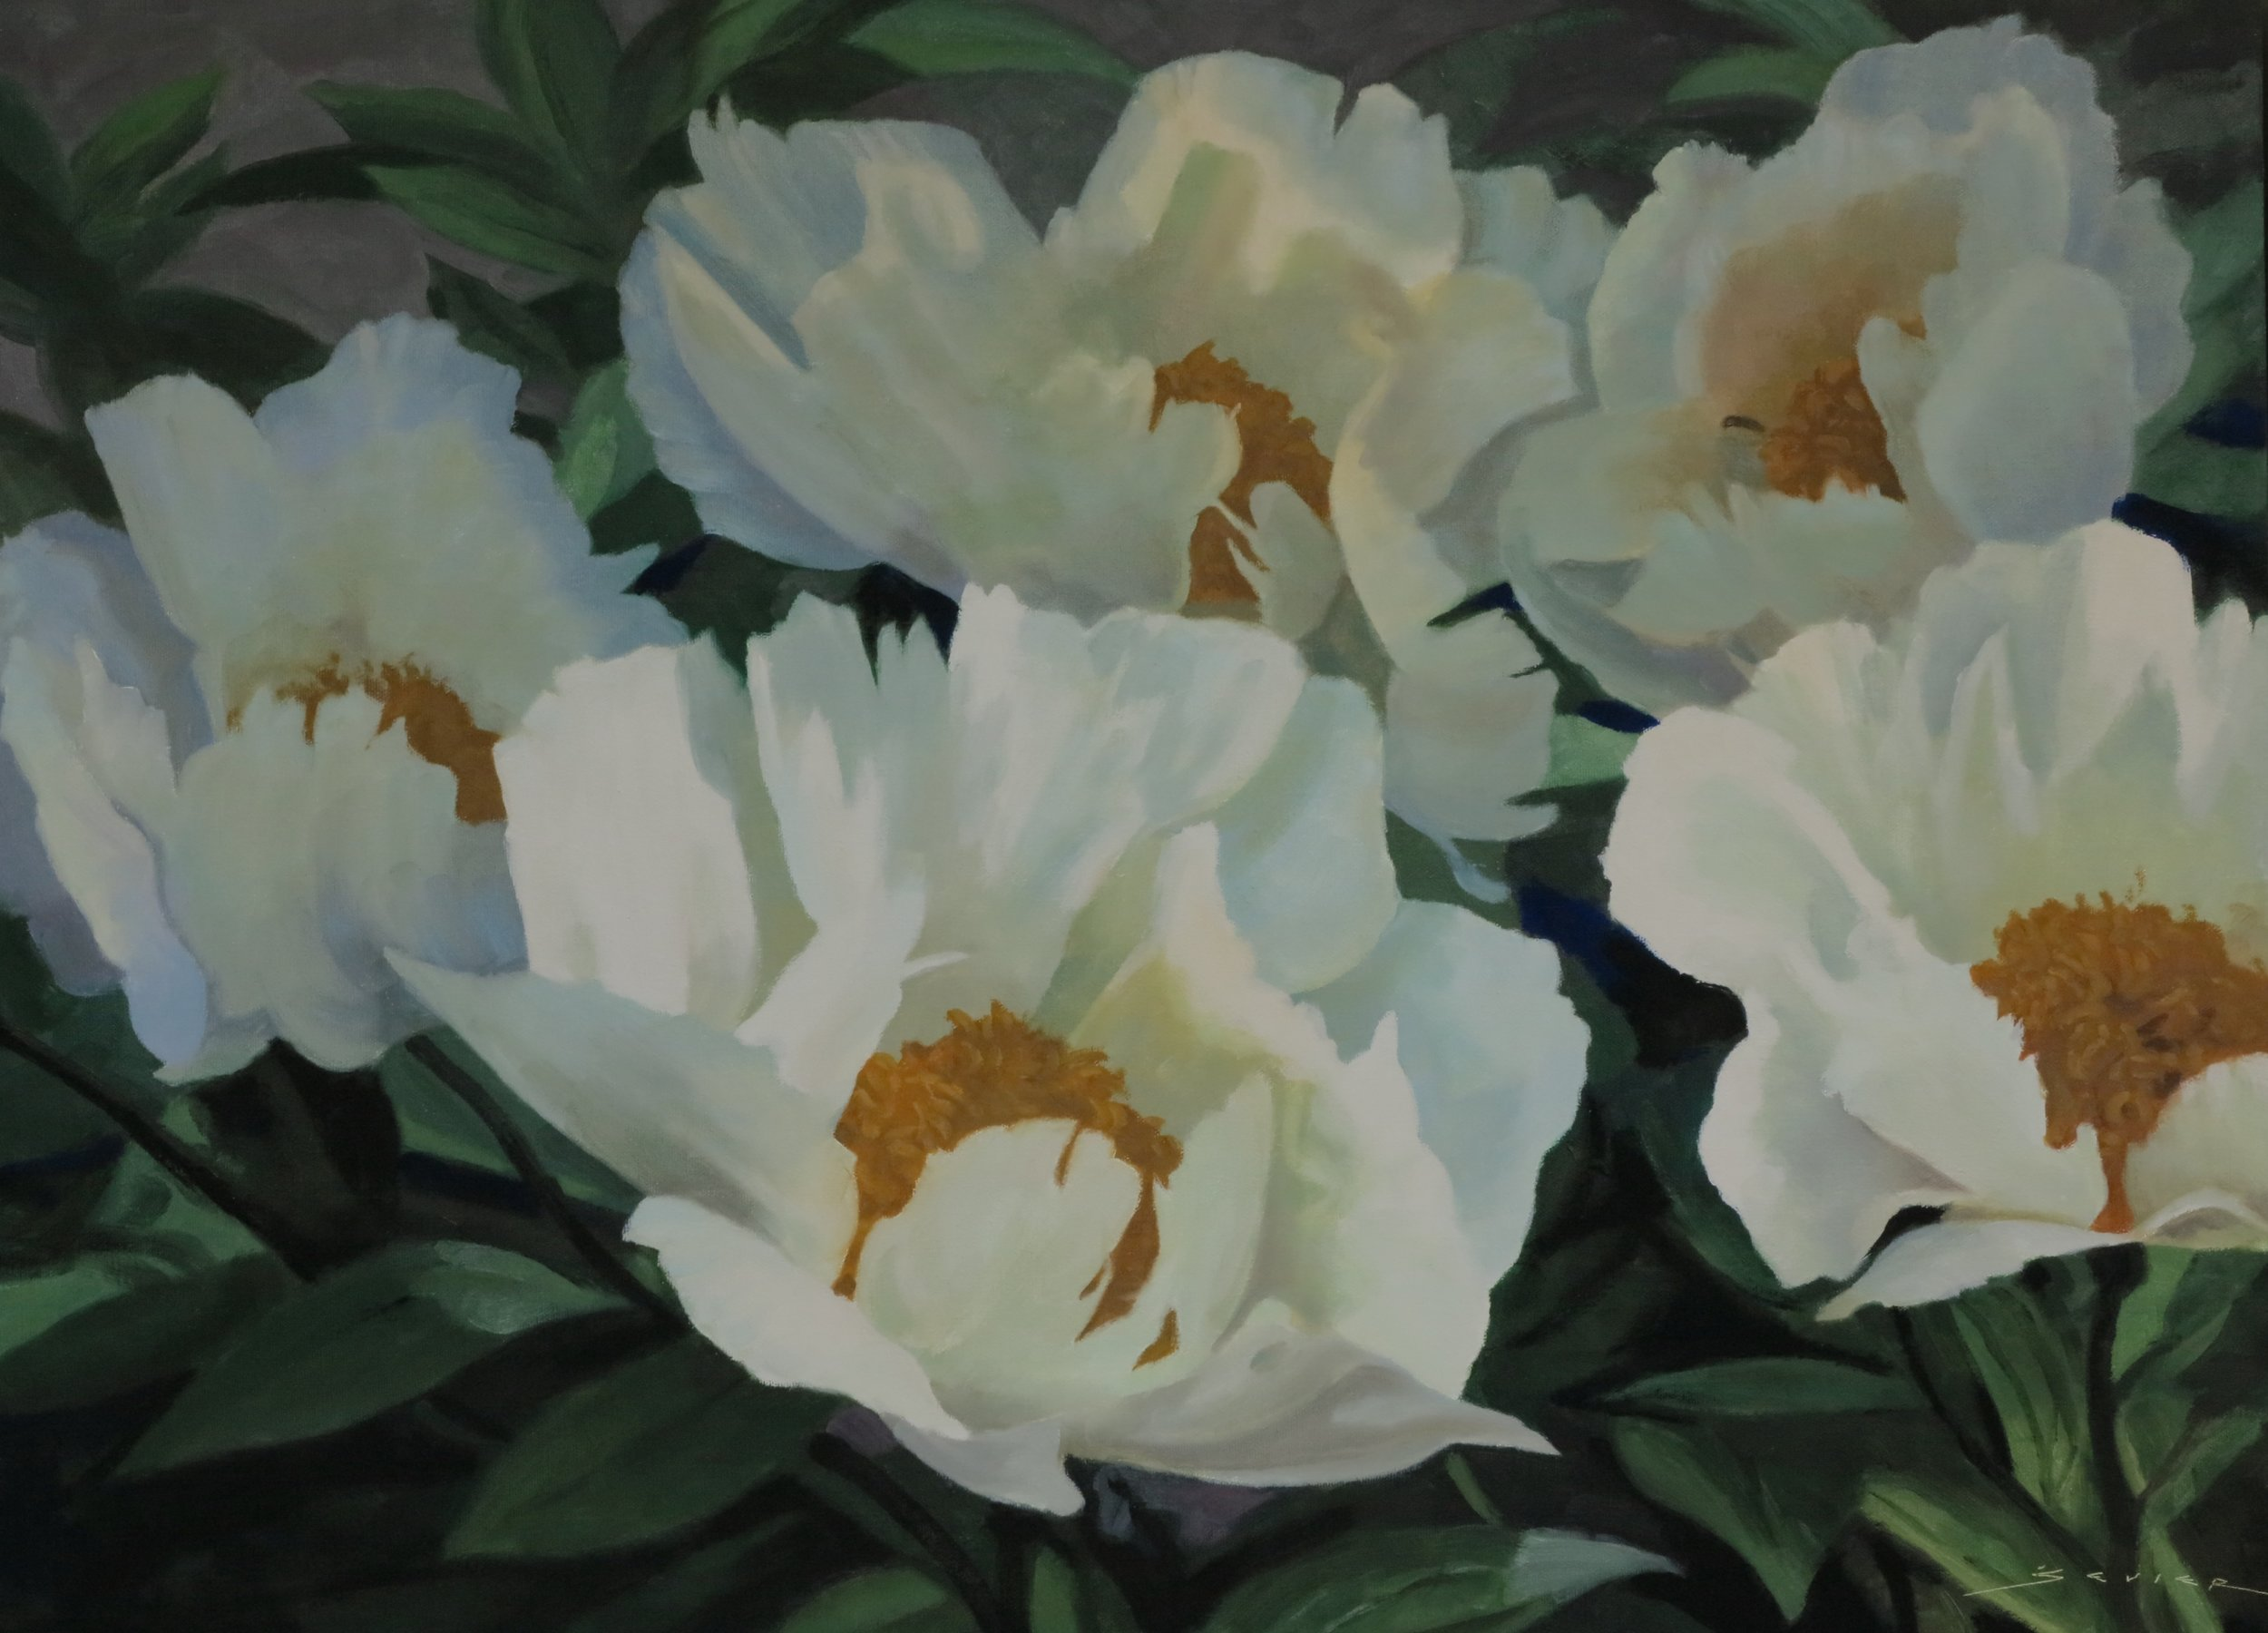 Five White Peonies